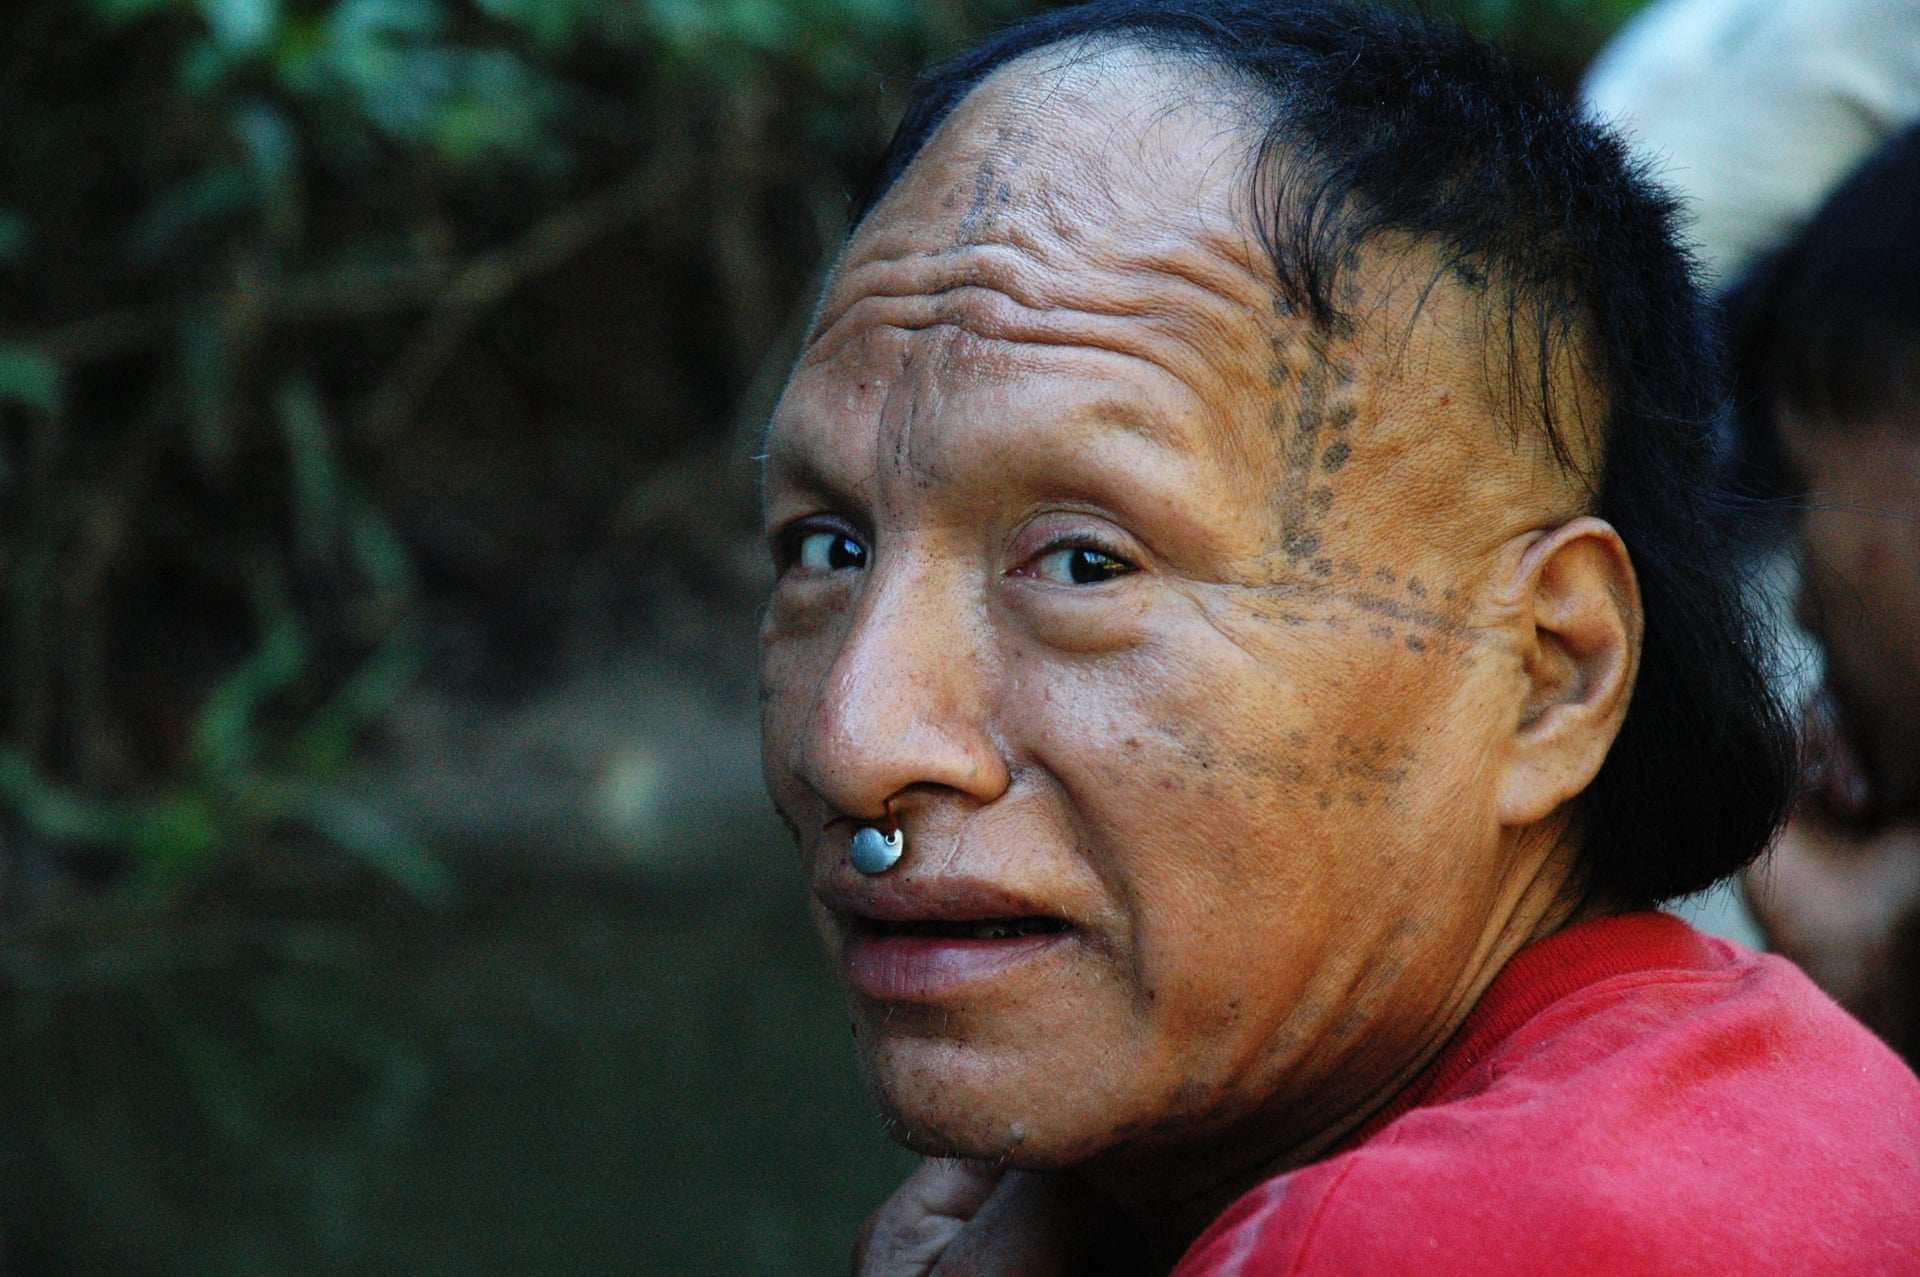 """Epa"", a Mastanahua man in Purus who entered into contact with outsiders over 10 years ago. Only four people in Epa's group made contact - the rest continue living in ""isolation."" Photograph: David Hill/Survival"